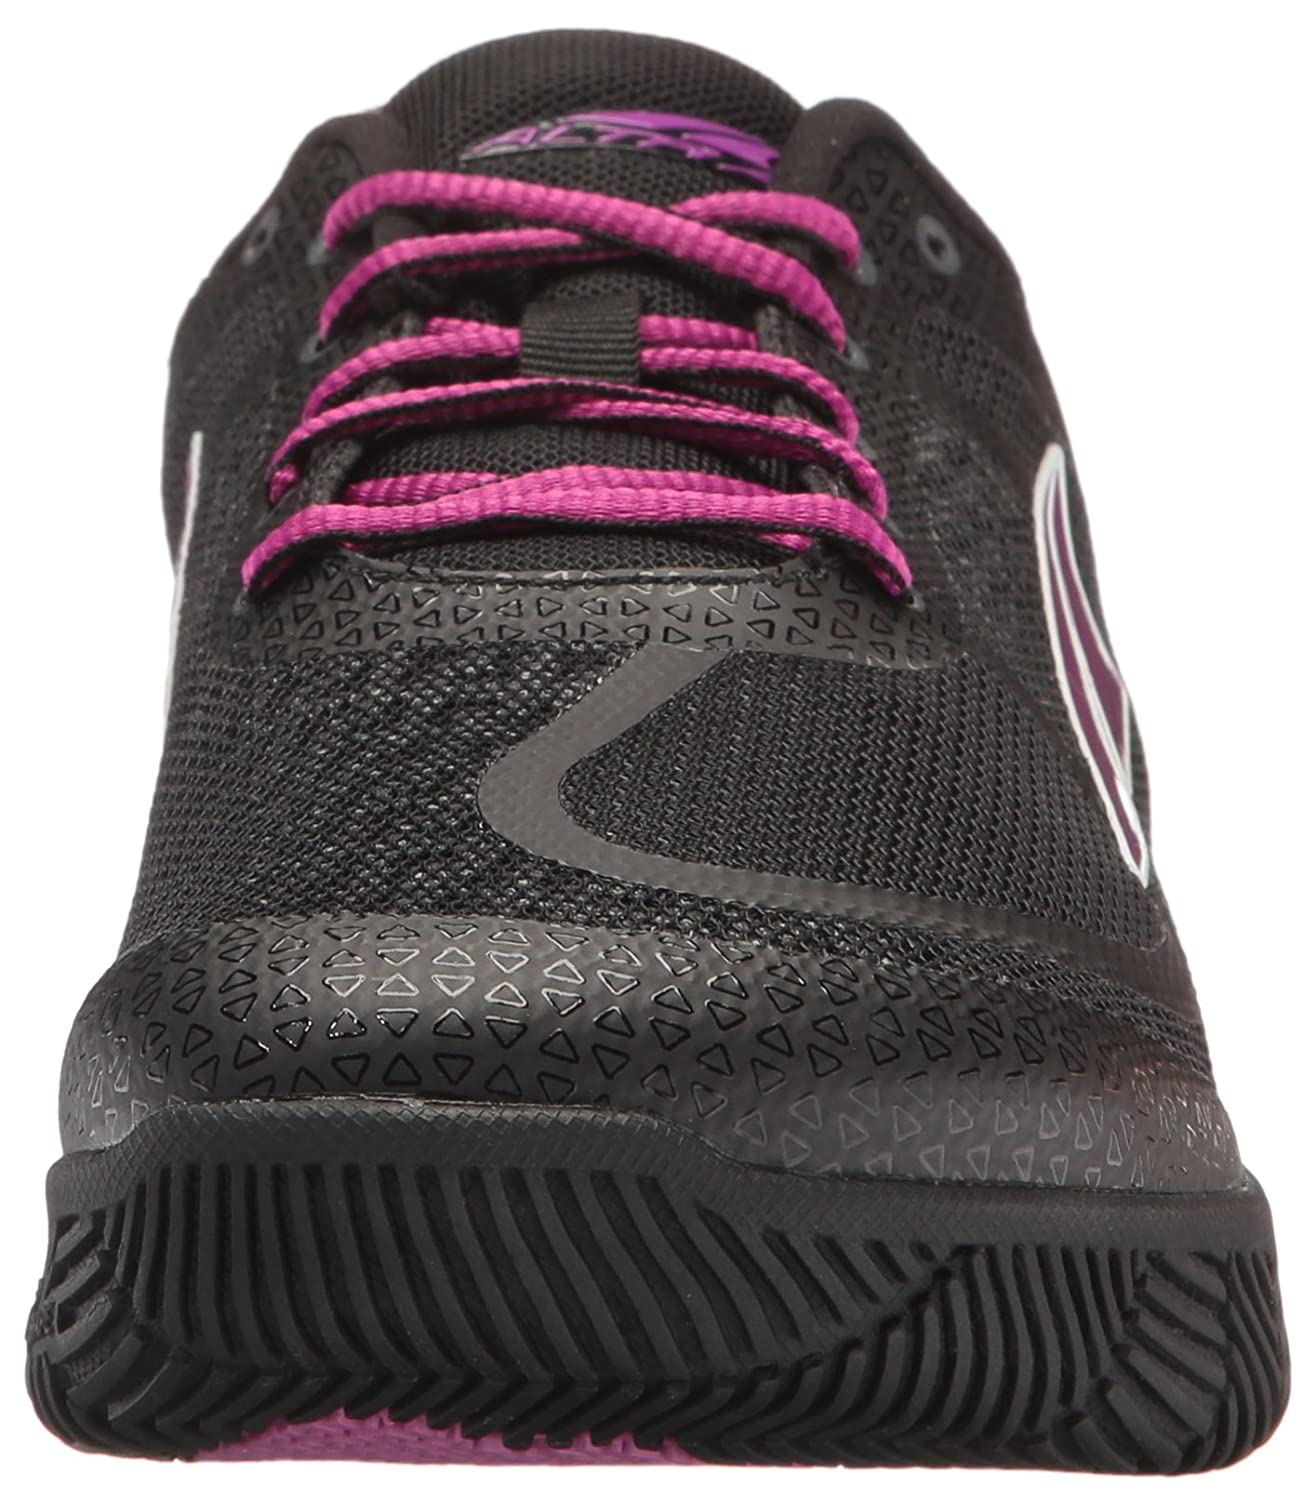 Altra Women's HIIT XT Cross-Training Shoe B01MQYJ201 10.5 B(M) US|Black/Purple